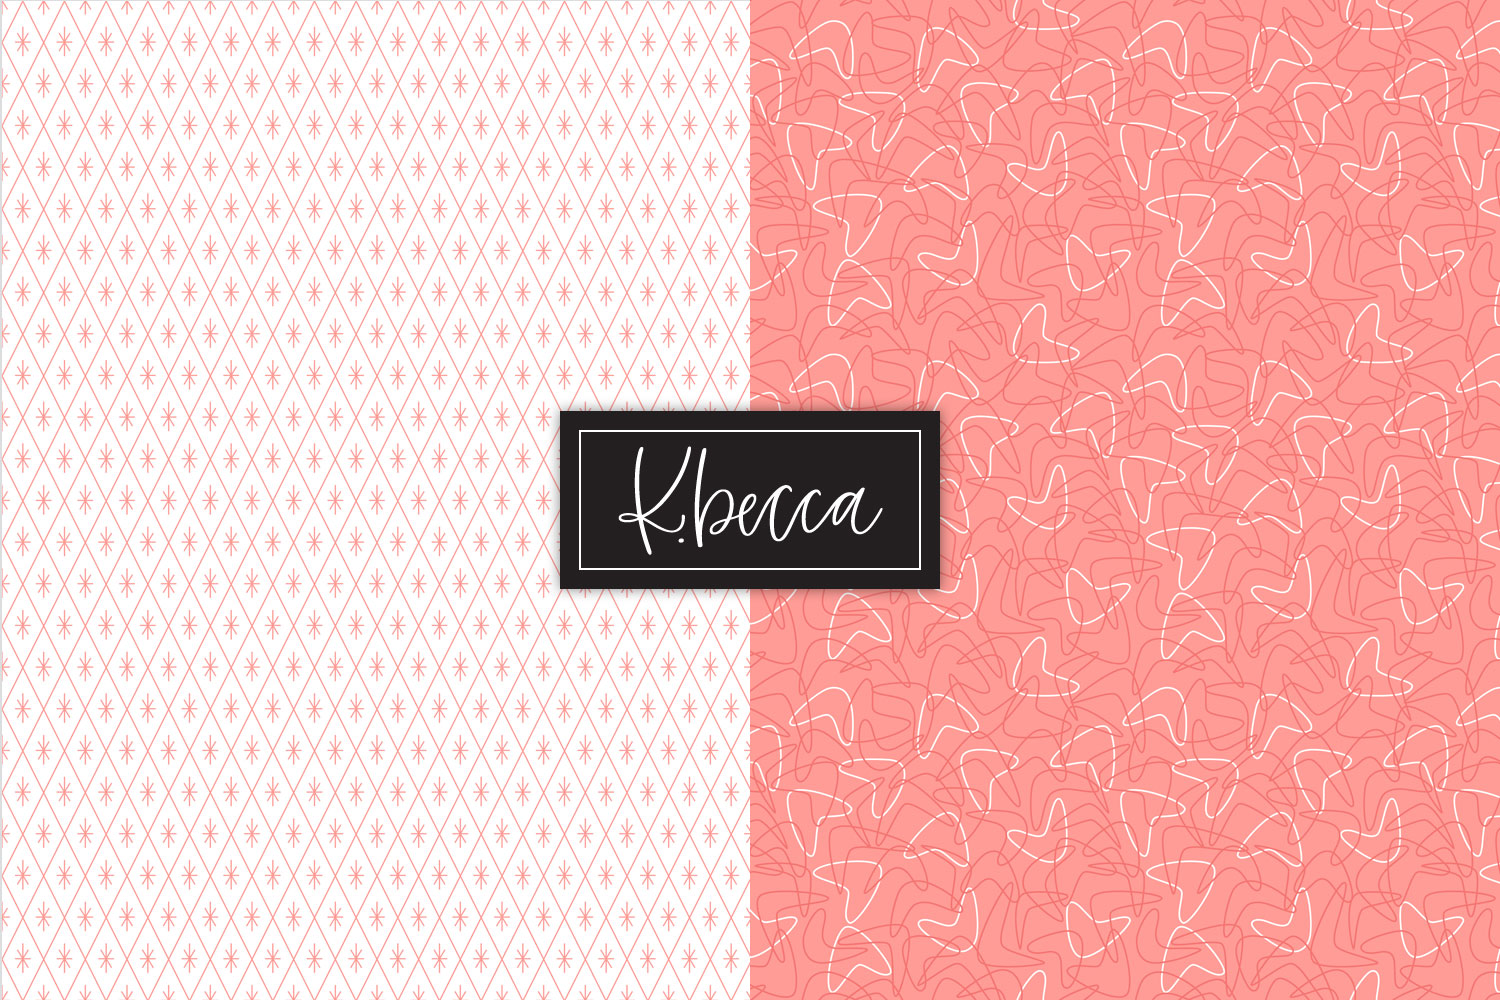 Retro 1950s Background Patterns Seamless example image 4